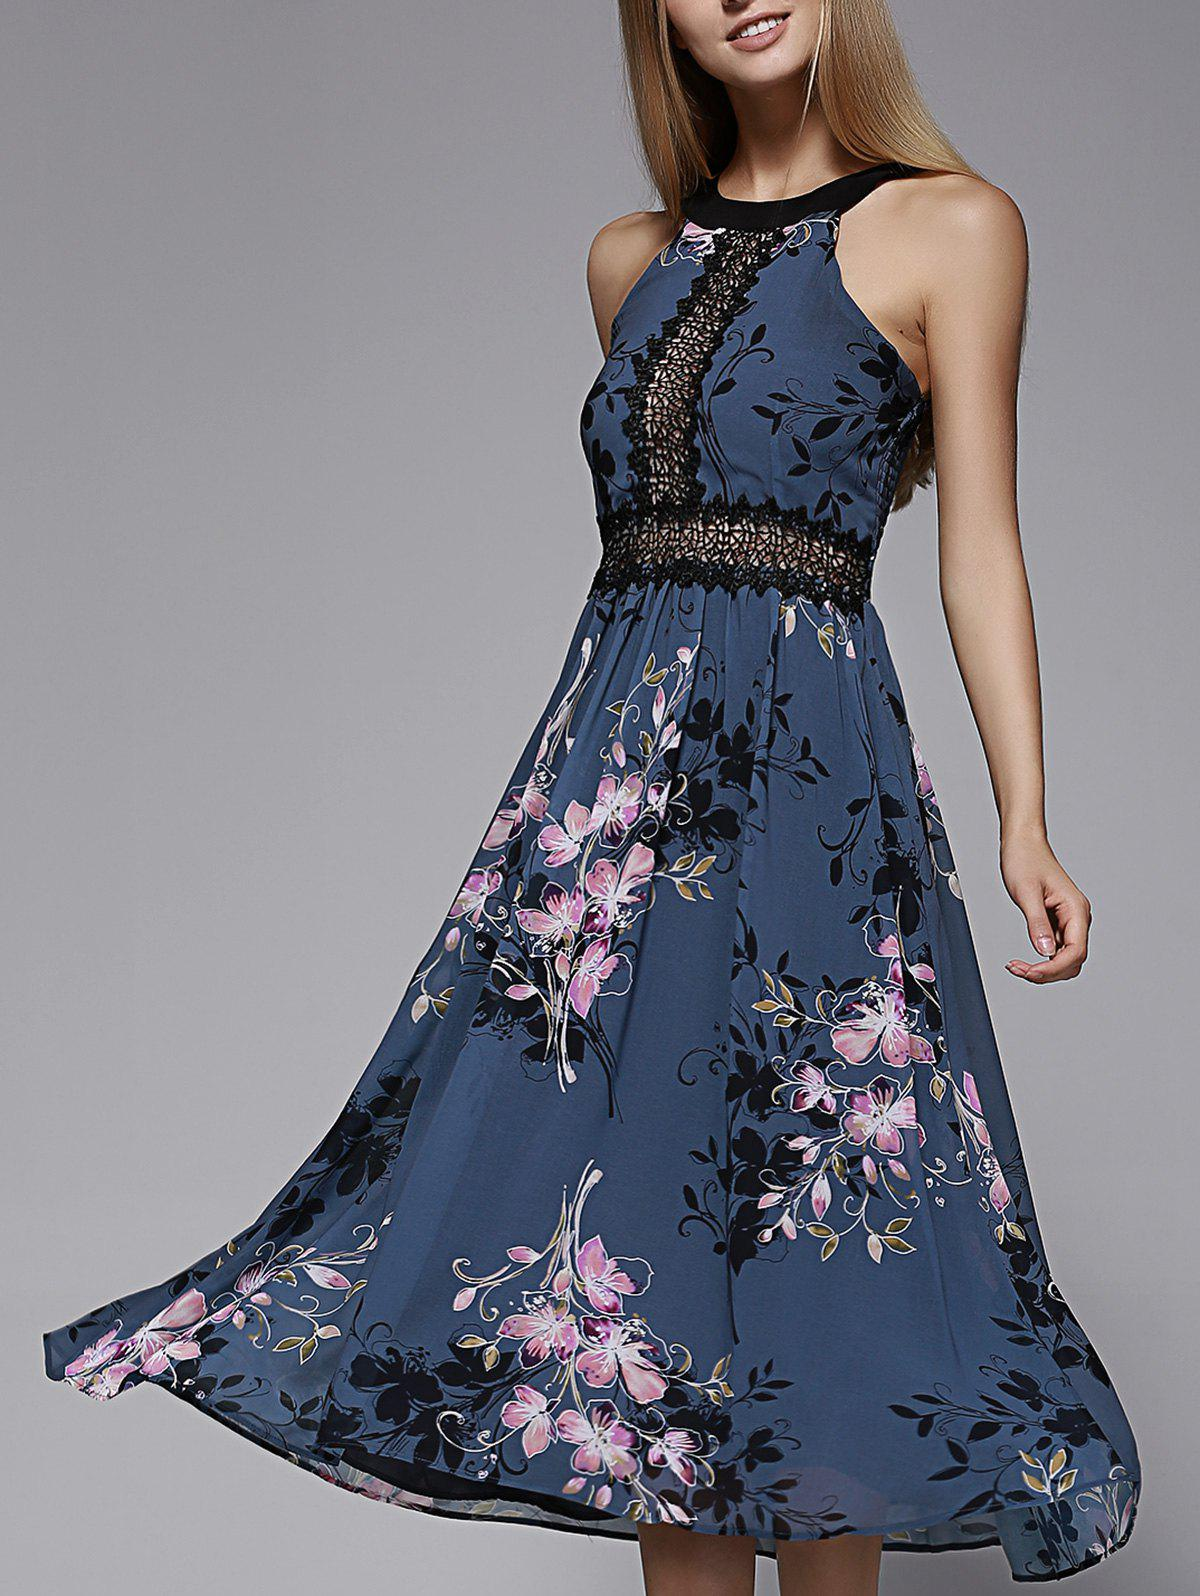 Charming Sleeveless Hollow Out Lace Spliced Floral Print Women's Dress